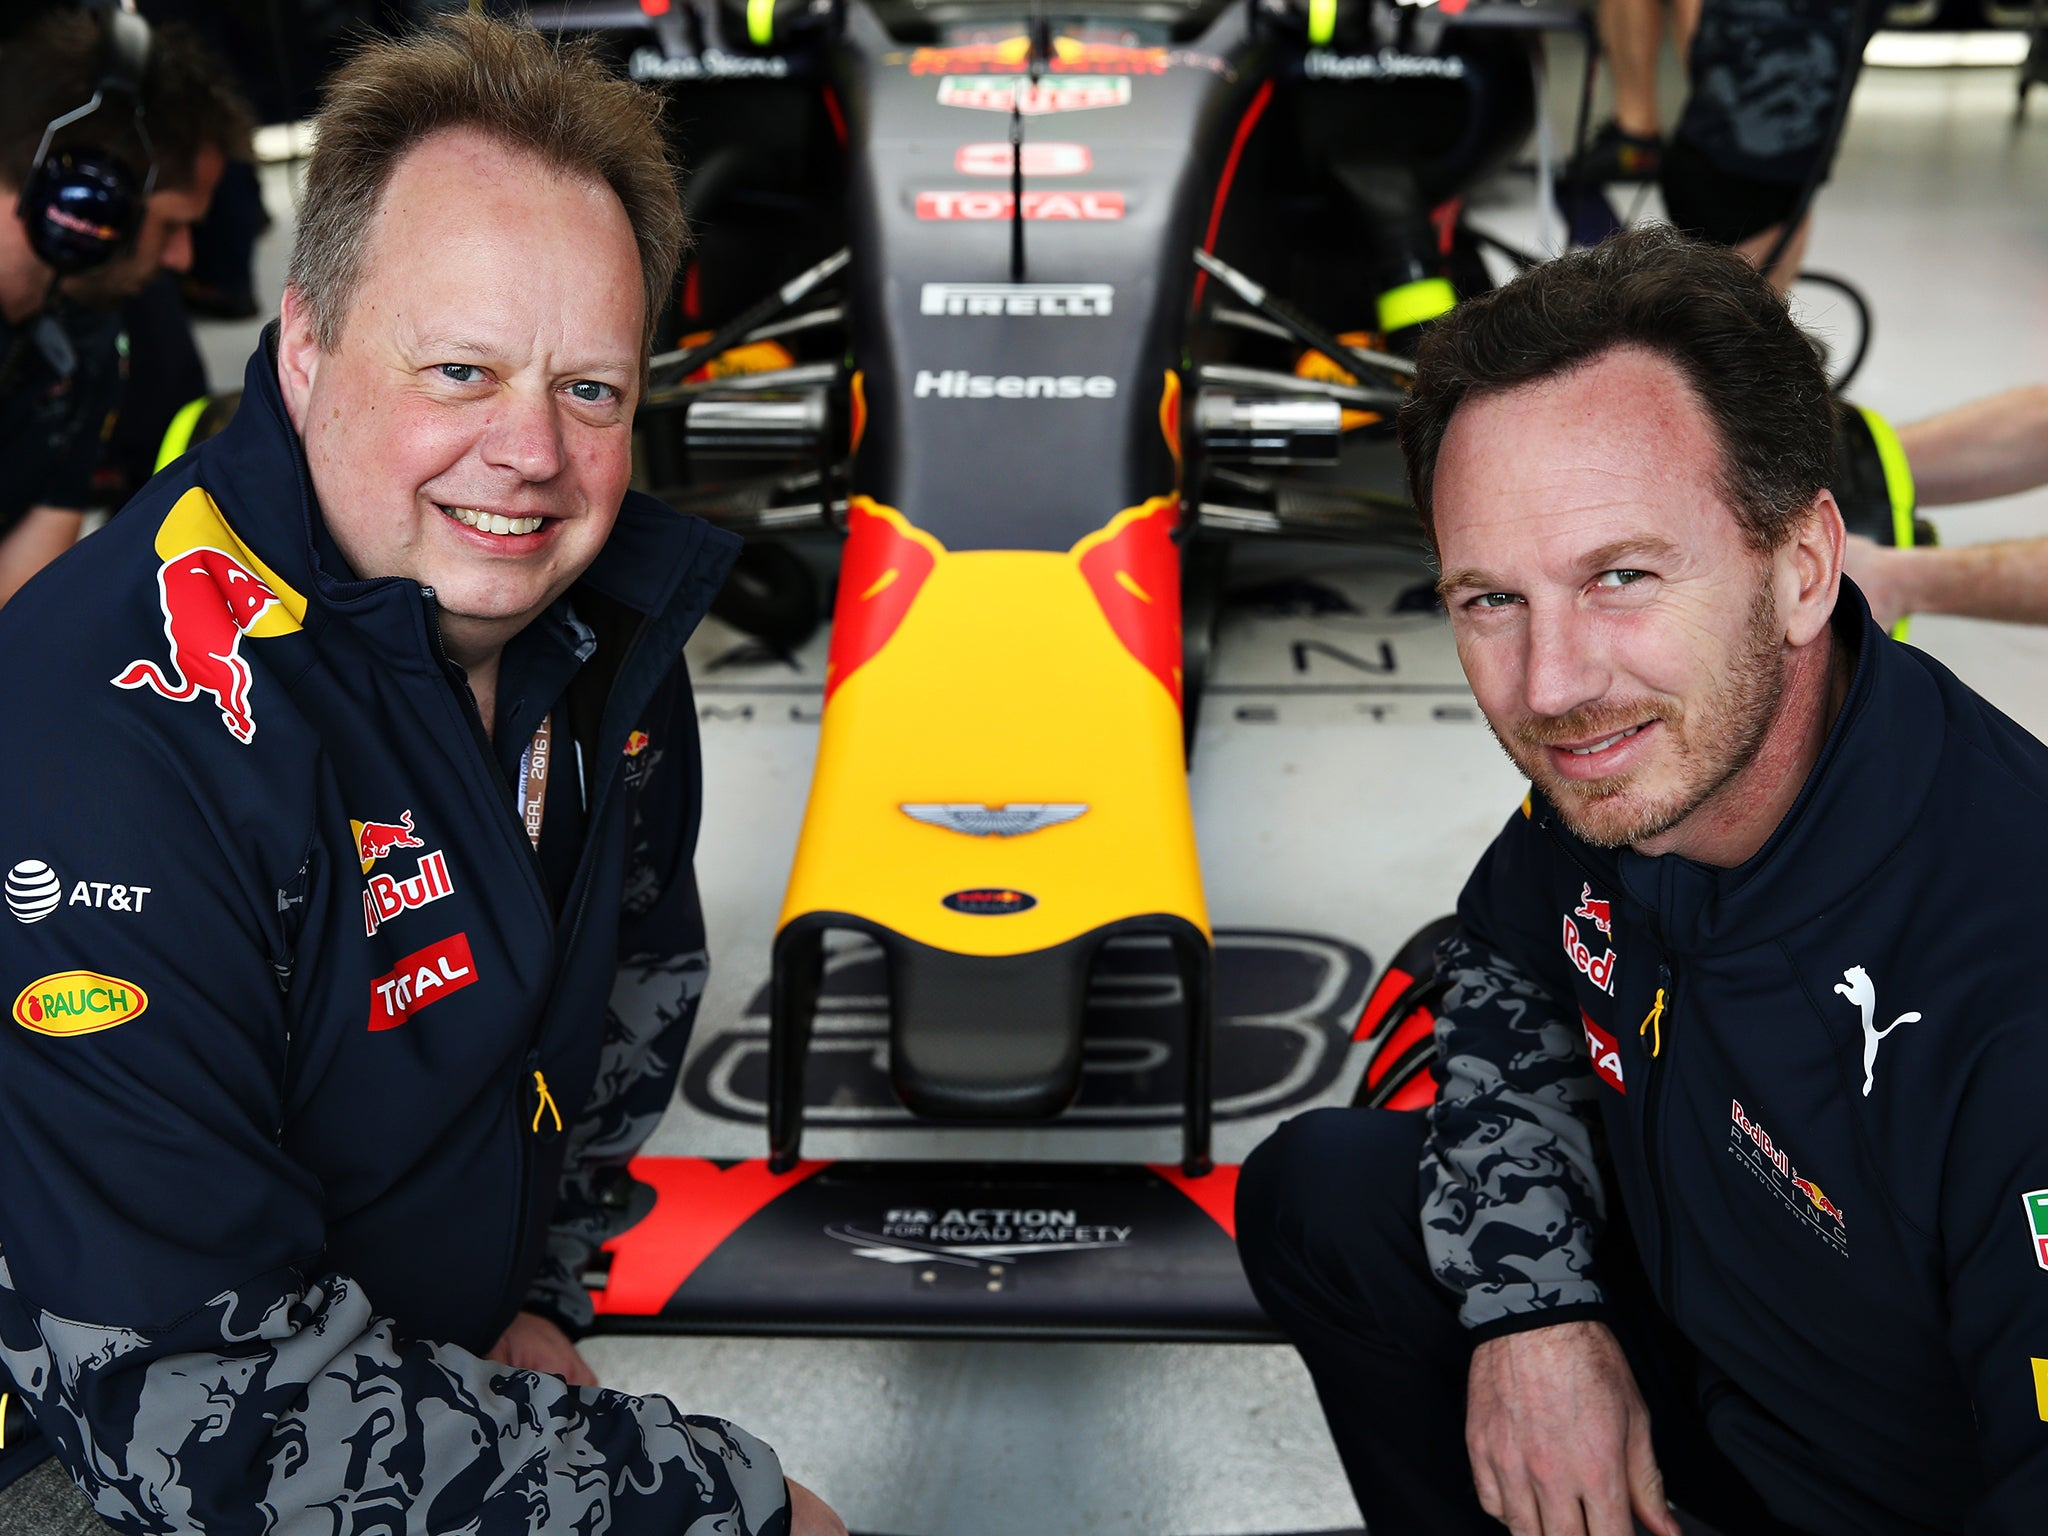 Red Bull To Be Renamed As Aston Martin Red Bull Racing From 2018 F1 Season The Independent The Independent